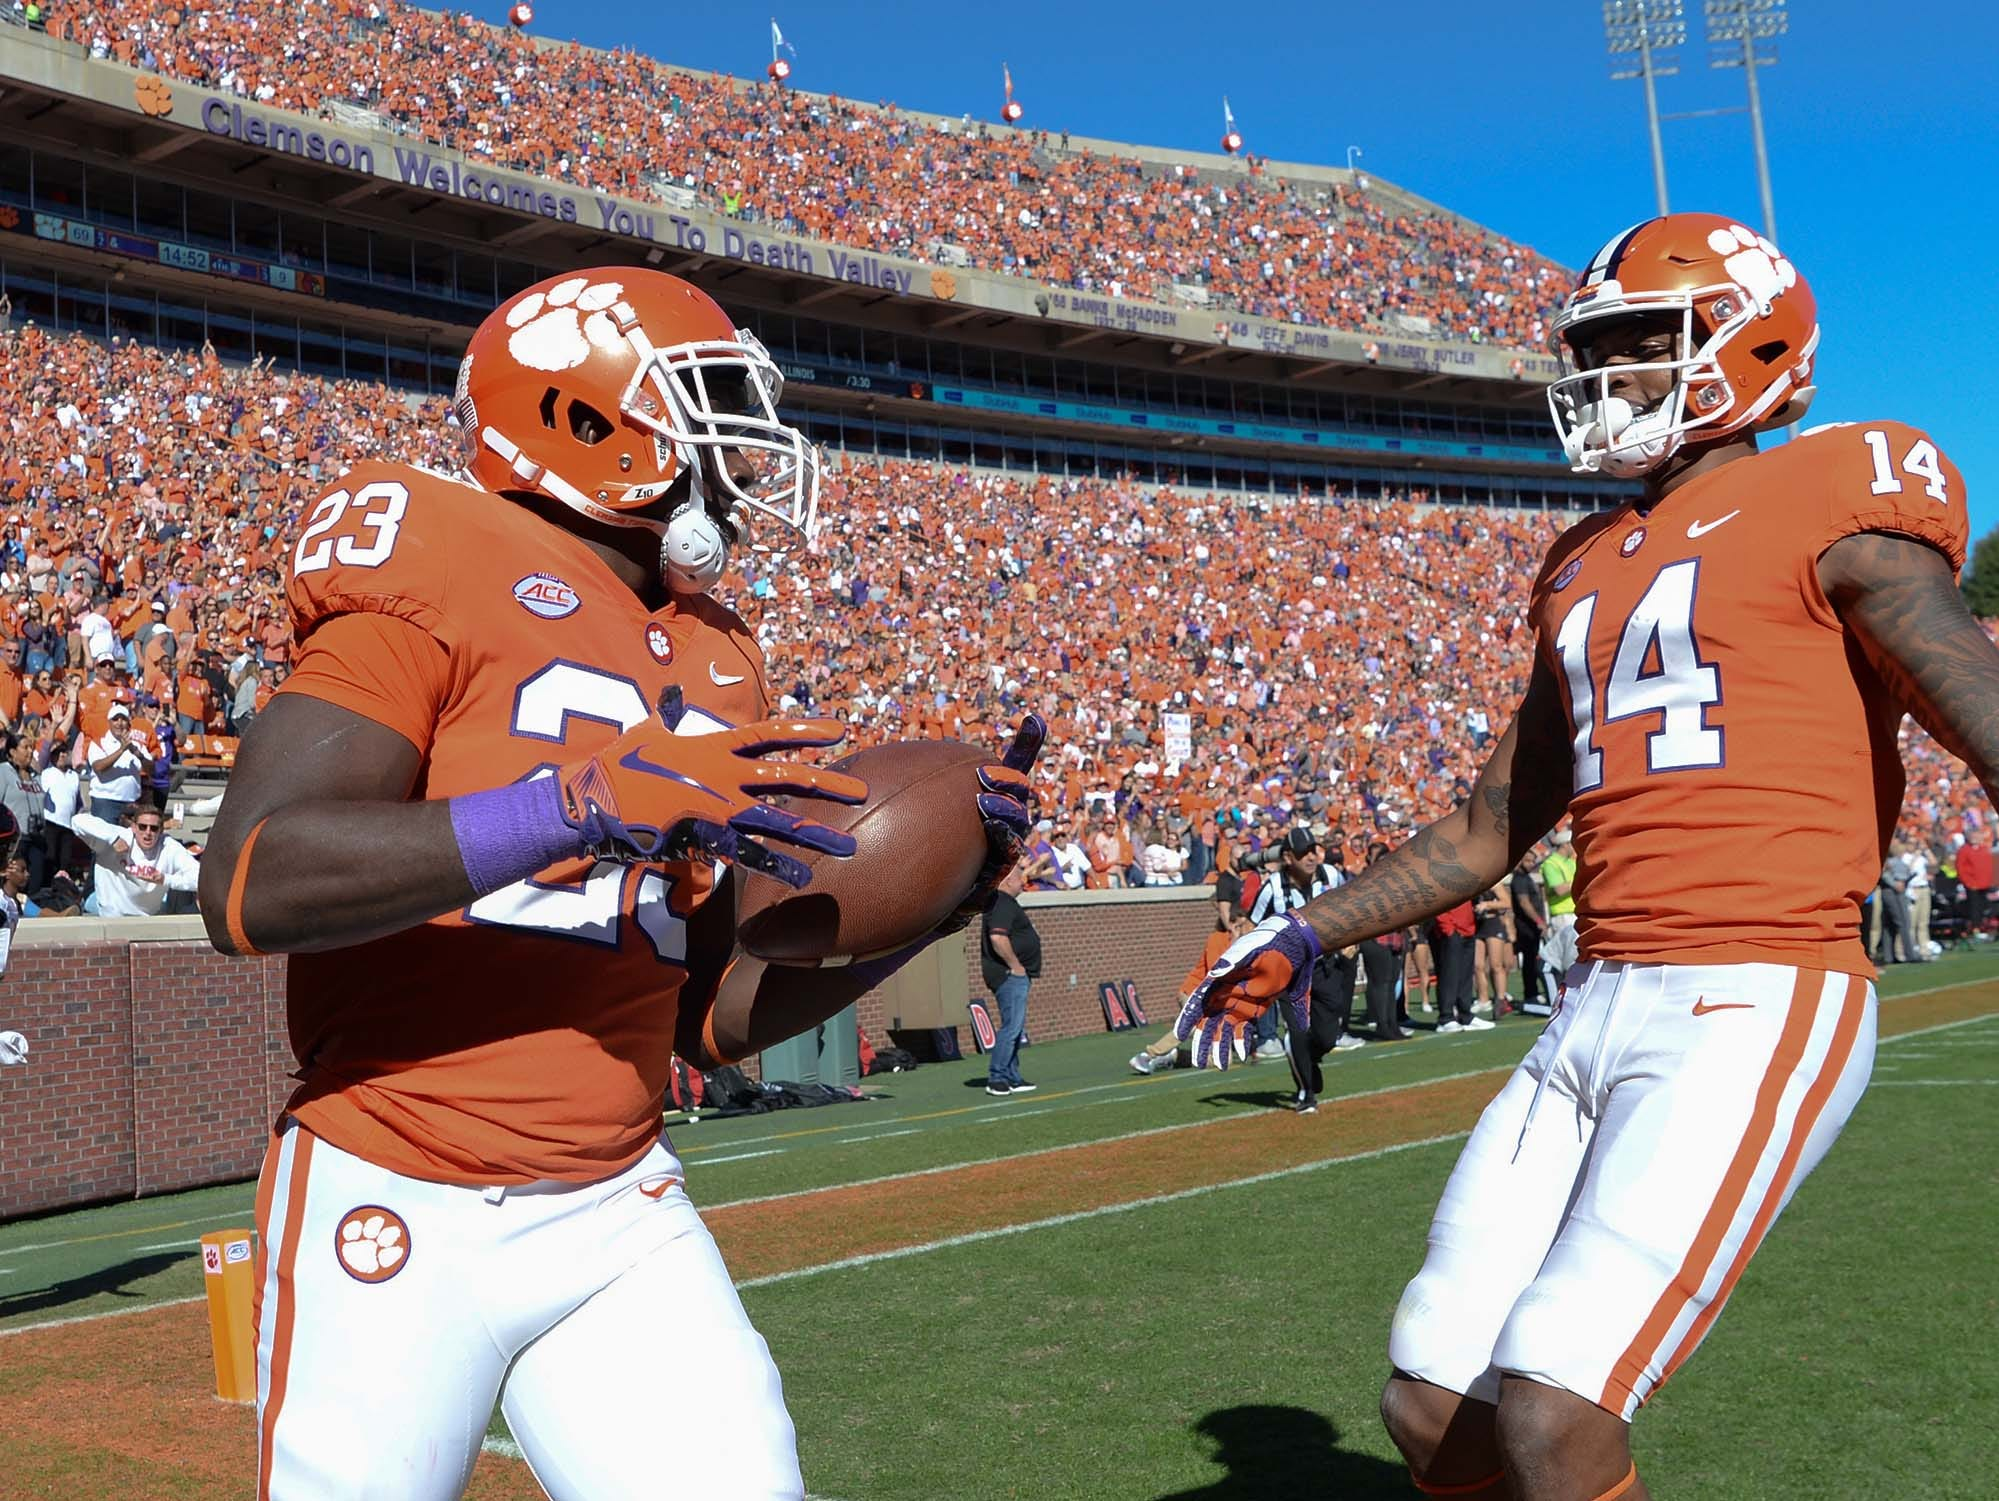 Clemson running back Lyn-J Dixon (23) scores a touchdown and celebrates with wide receiver Diondre Overton (14) during the fourth quarter in Memorial Stadium on Saturday, November 3, 2018.